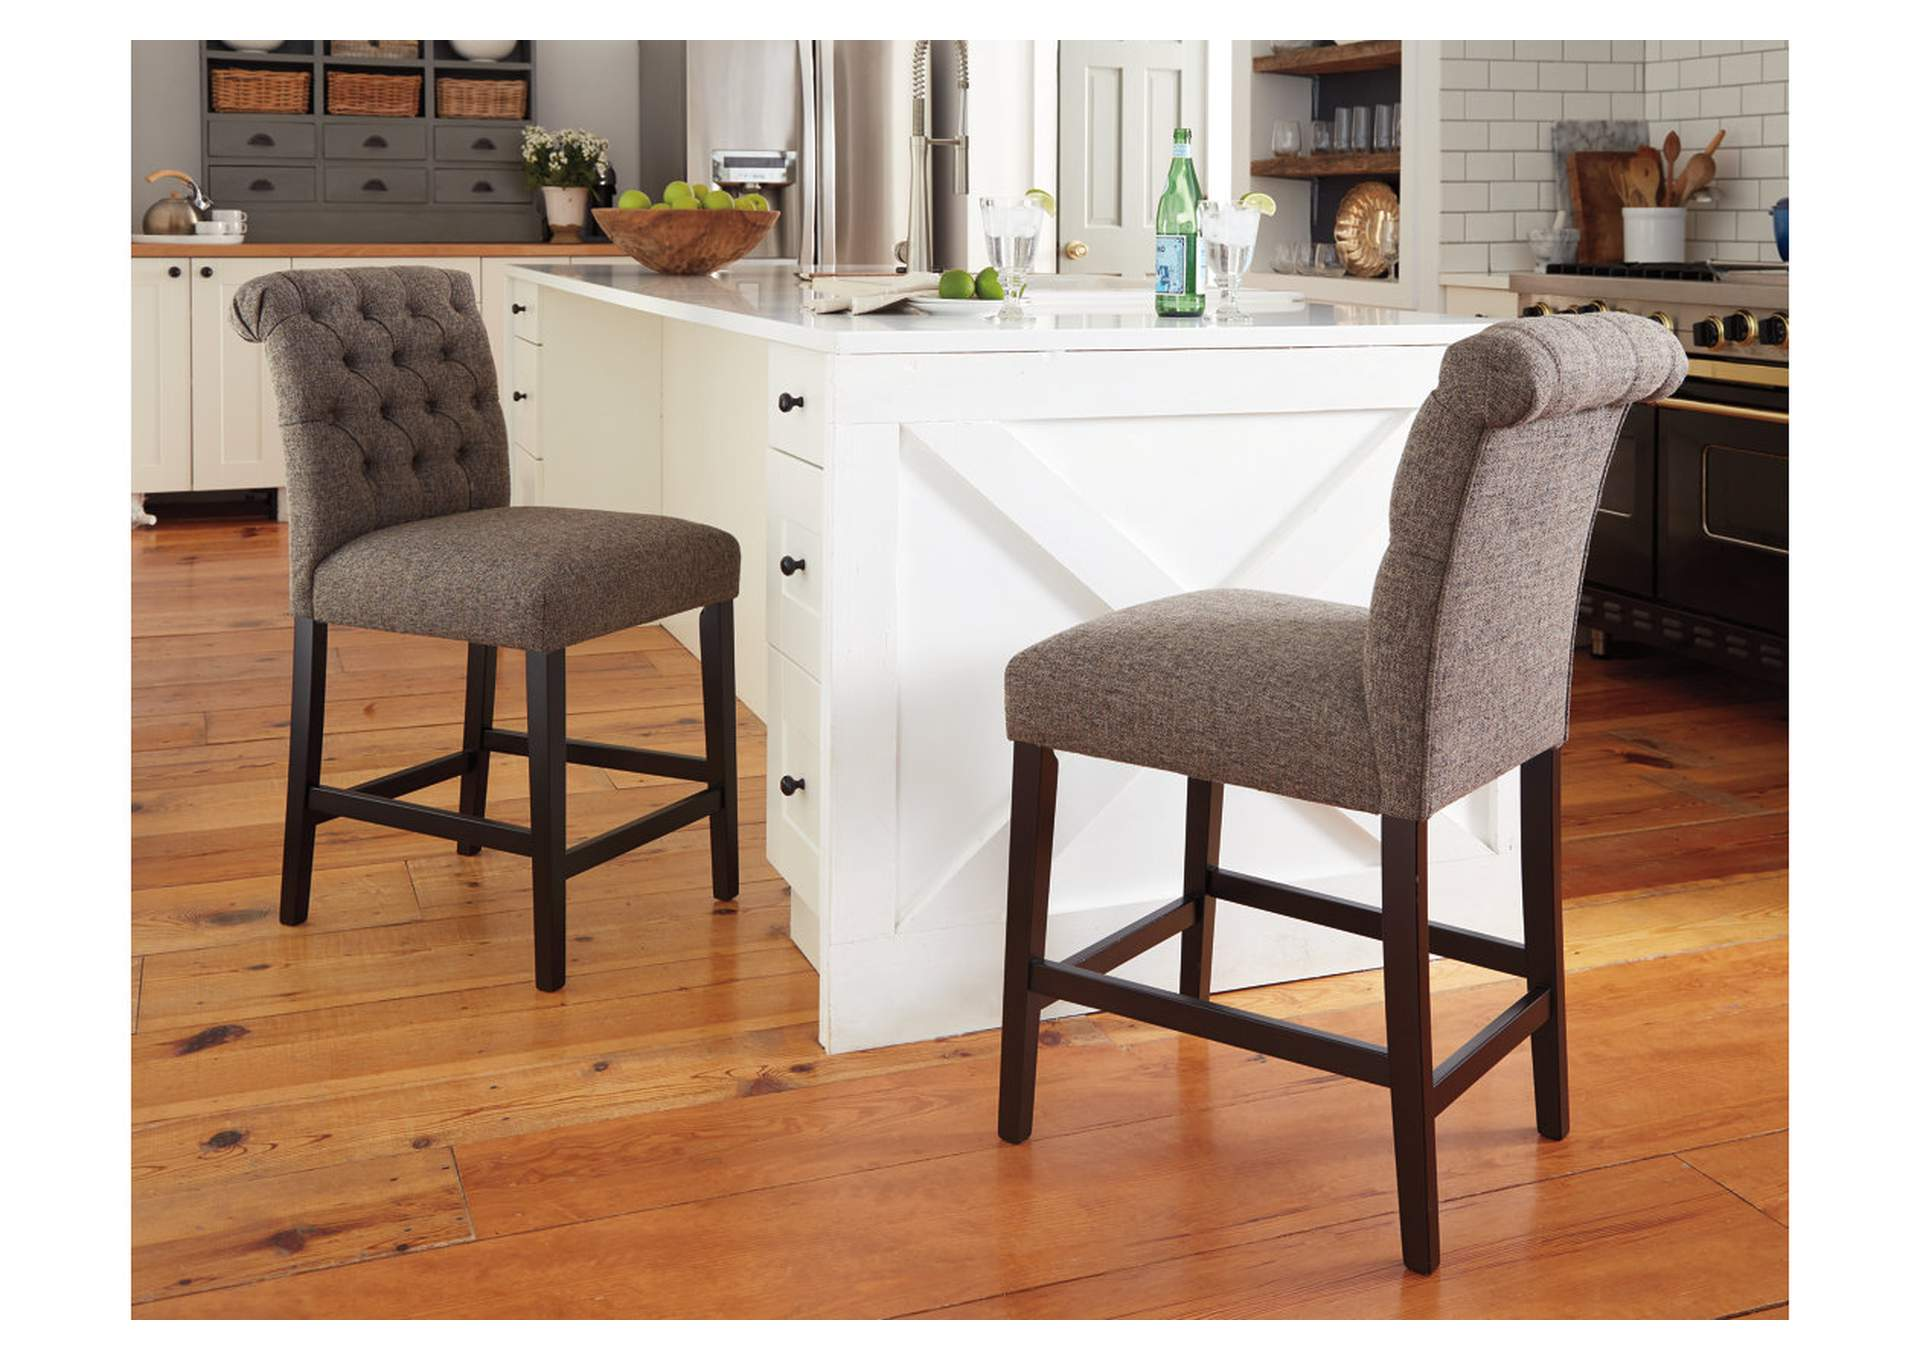 Tripton Medium Brown Upholstered Barstool (Set of 2),Signature Design By Ashley